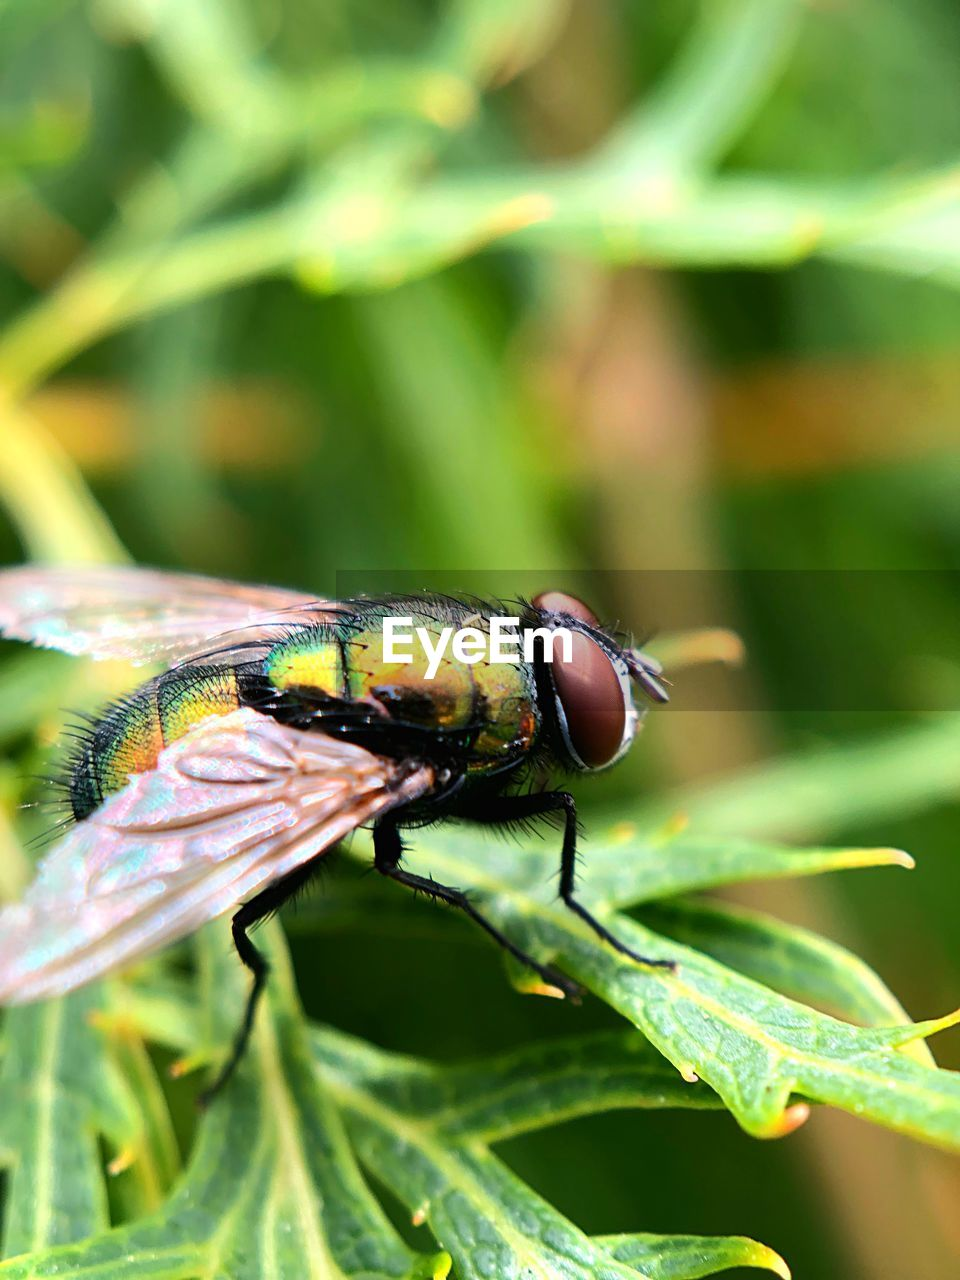 invertebrate, insect, animals in the wild, one animal, animal themes, animal wildlife, animal, close-up, green color, plant, leaf, nature, plant part, day, animal wing, fly, focus on foreground, no people, beauty in nature, growth, outdoors, pollination, animal eye